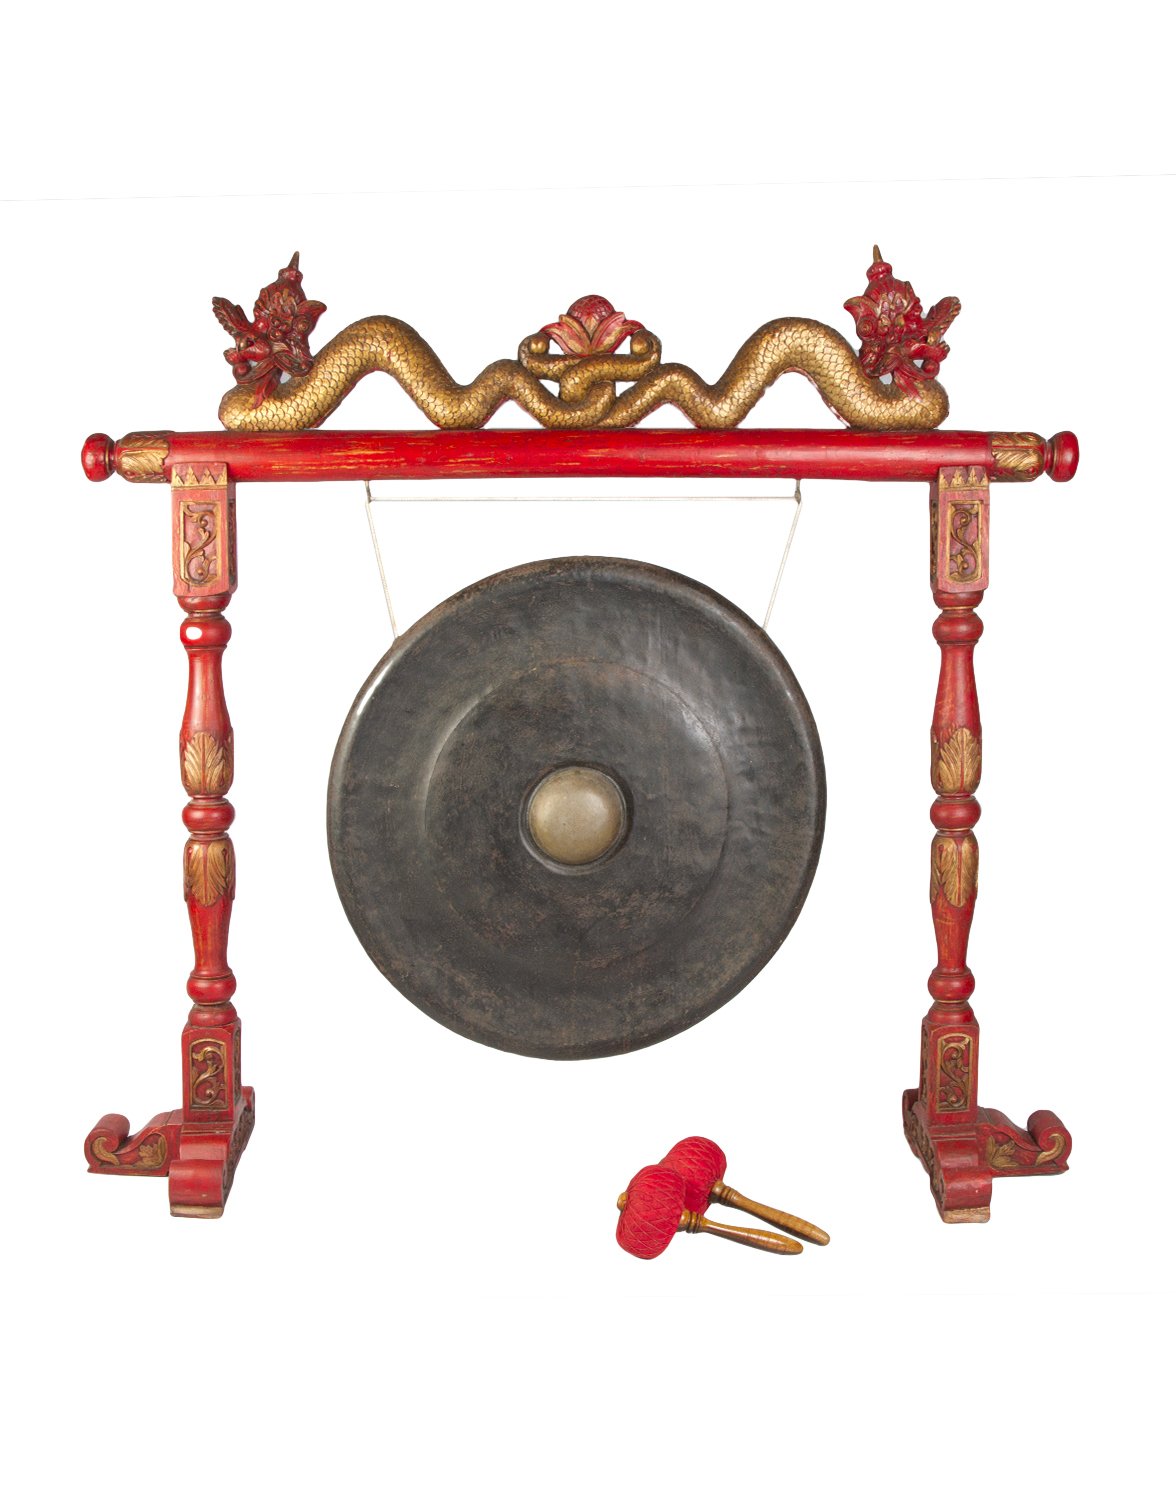 Gong instrumento musical